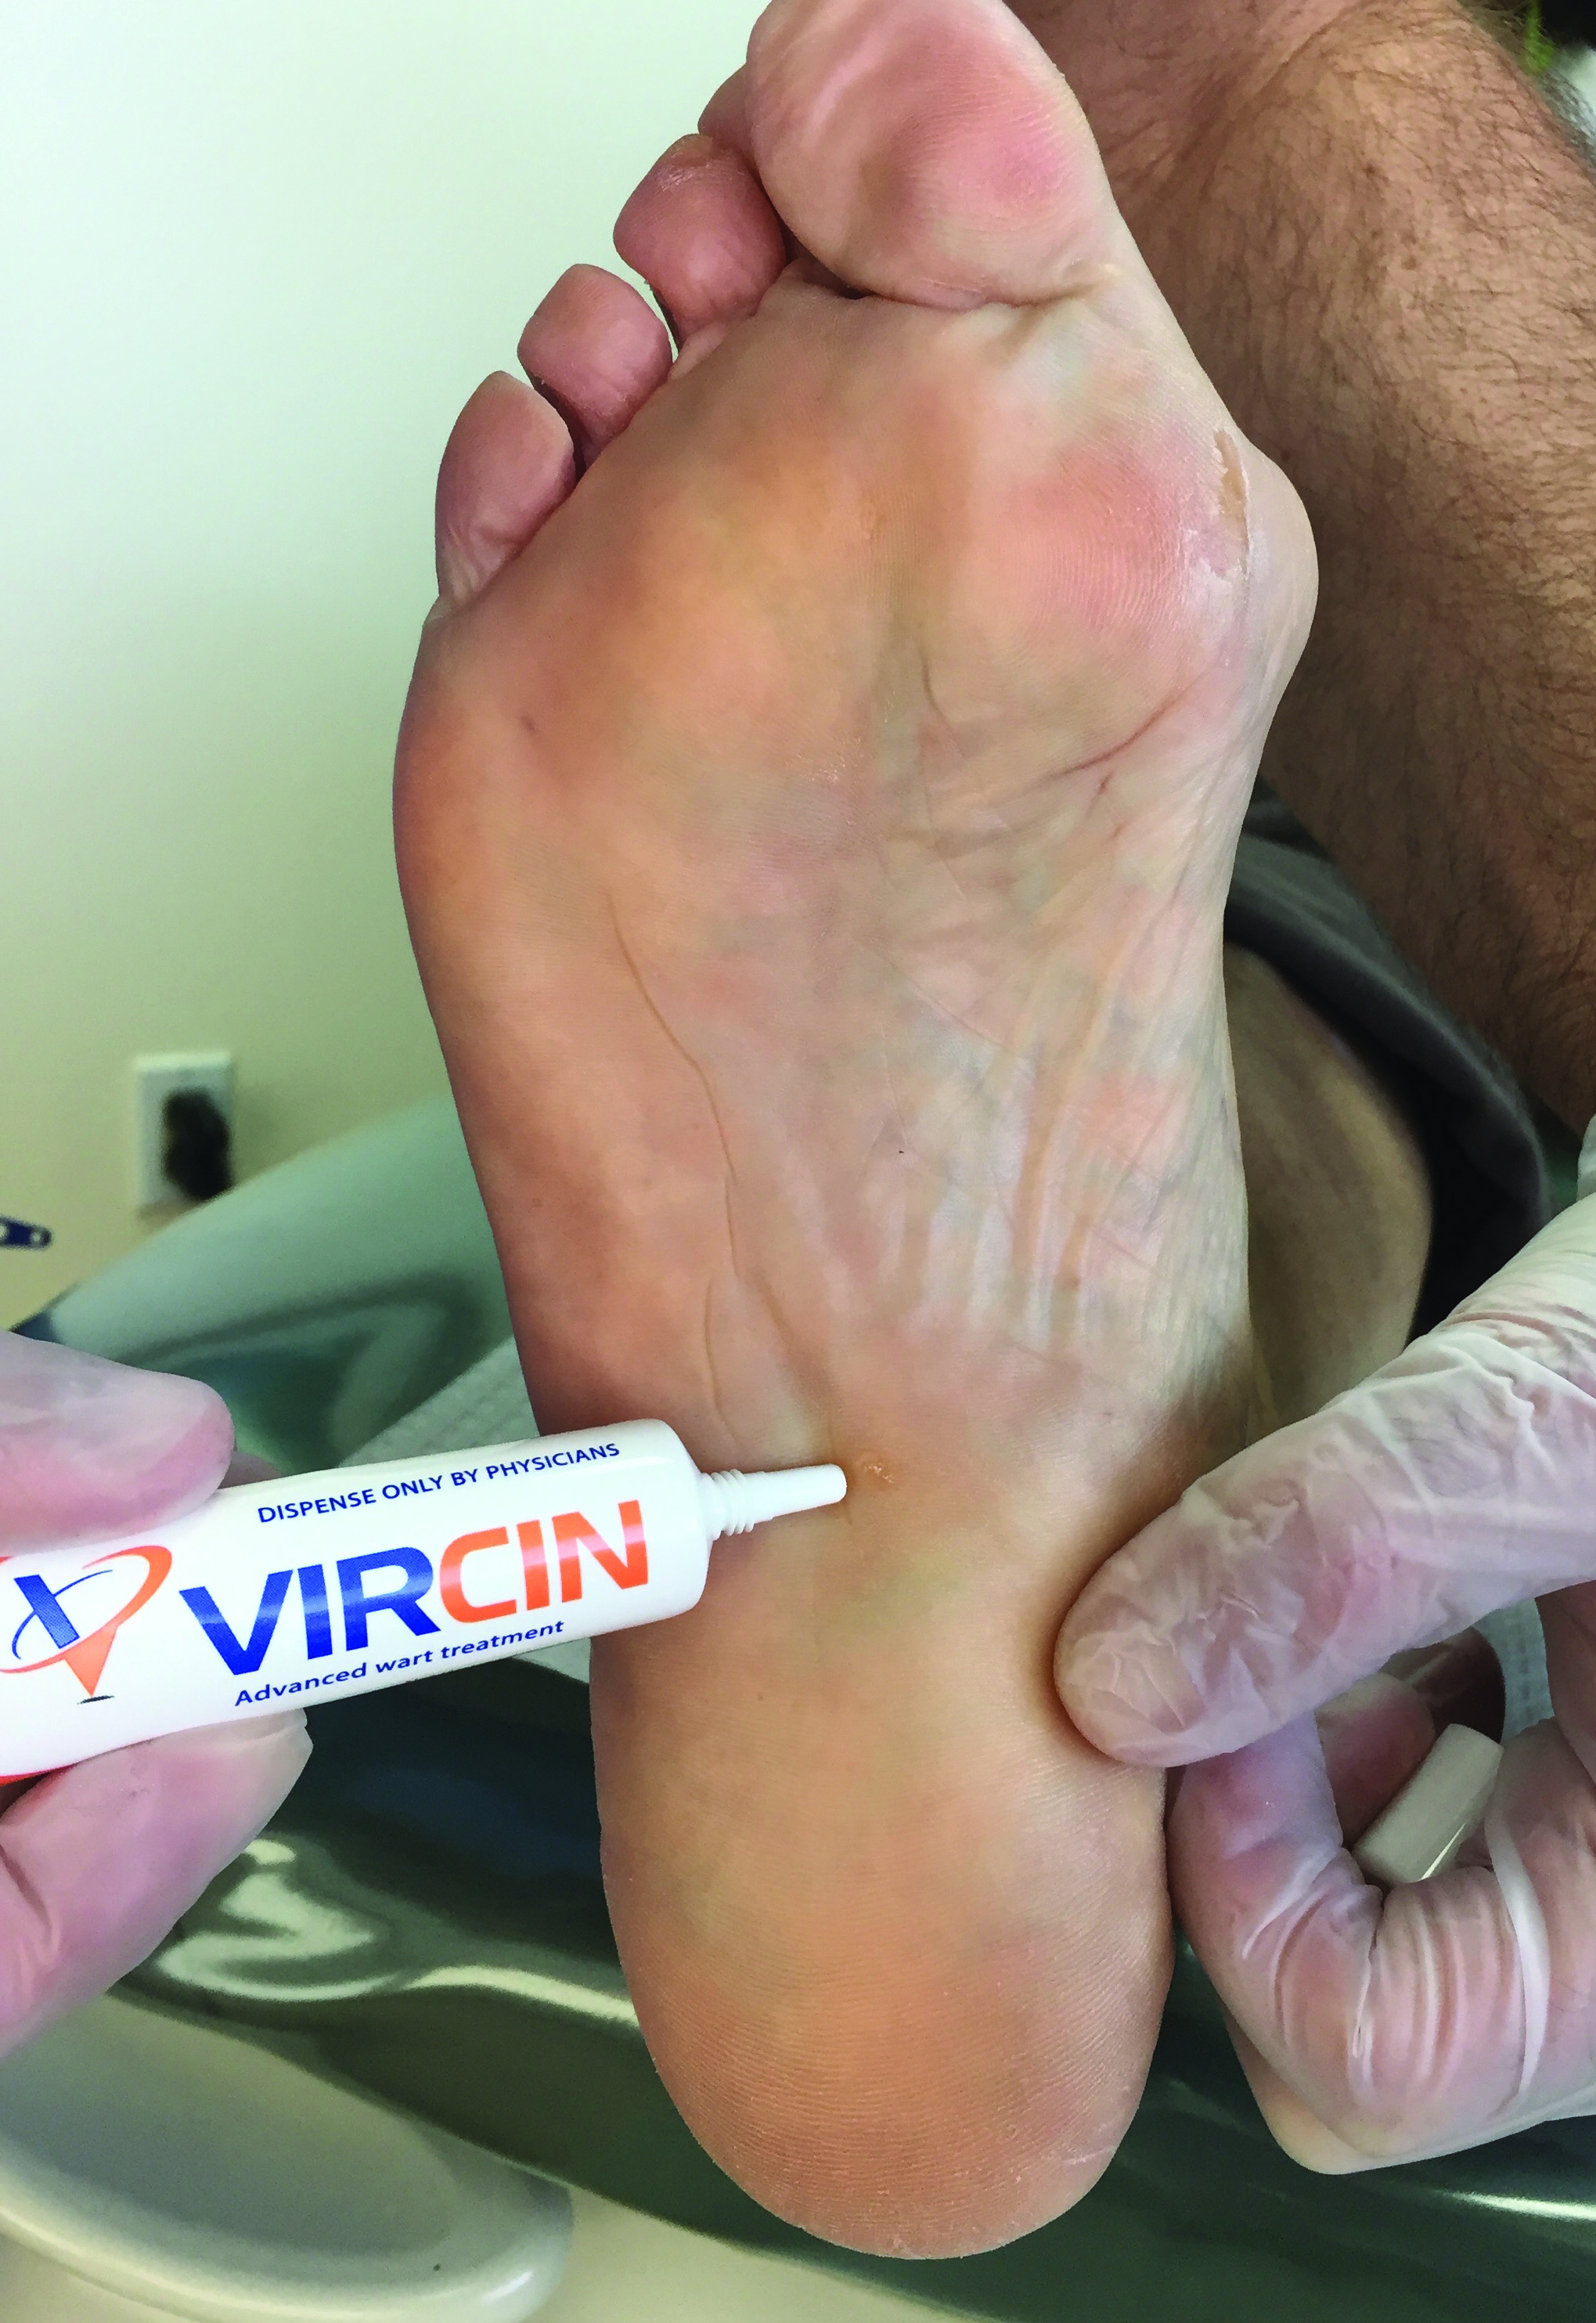 Here one can see the use of Vircin. The authors note significant success with twice-a-day application of the product.